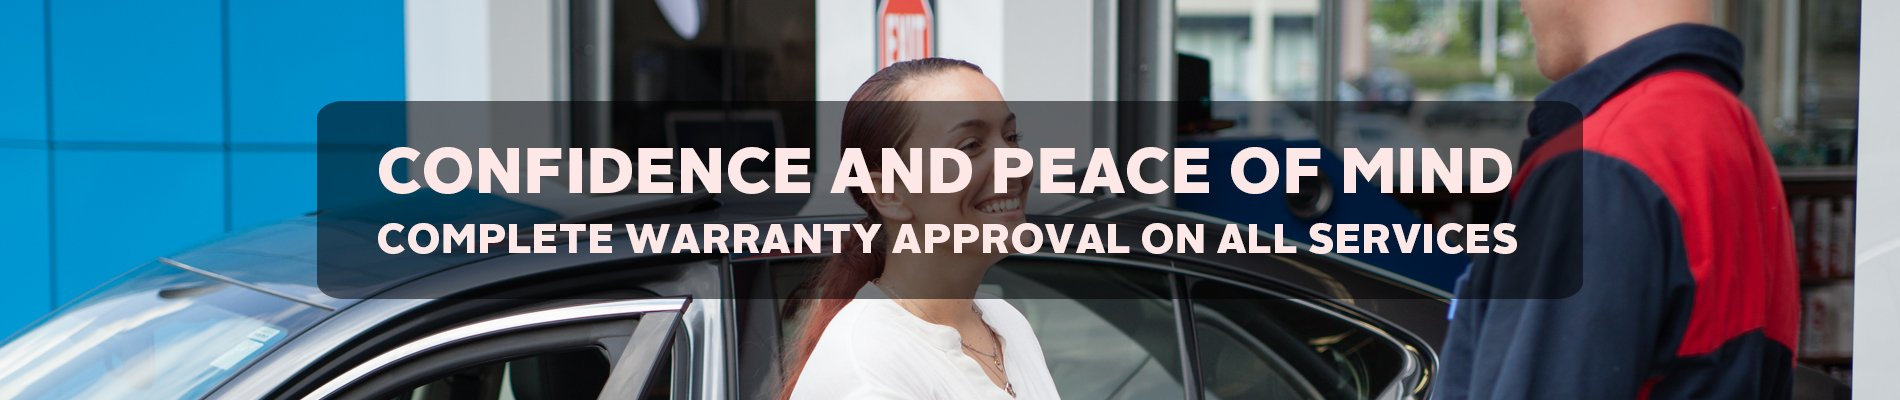 Confidence and peace of mind. Complete warranty approval on all services